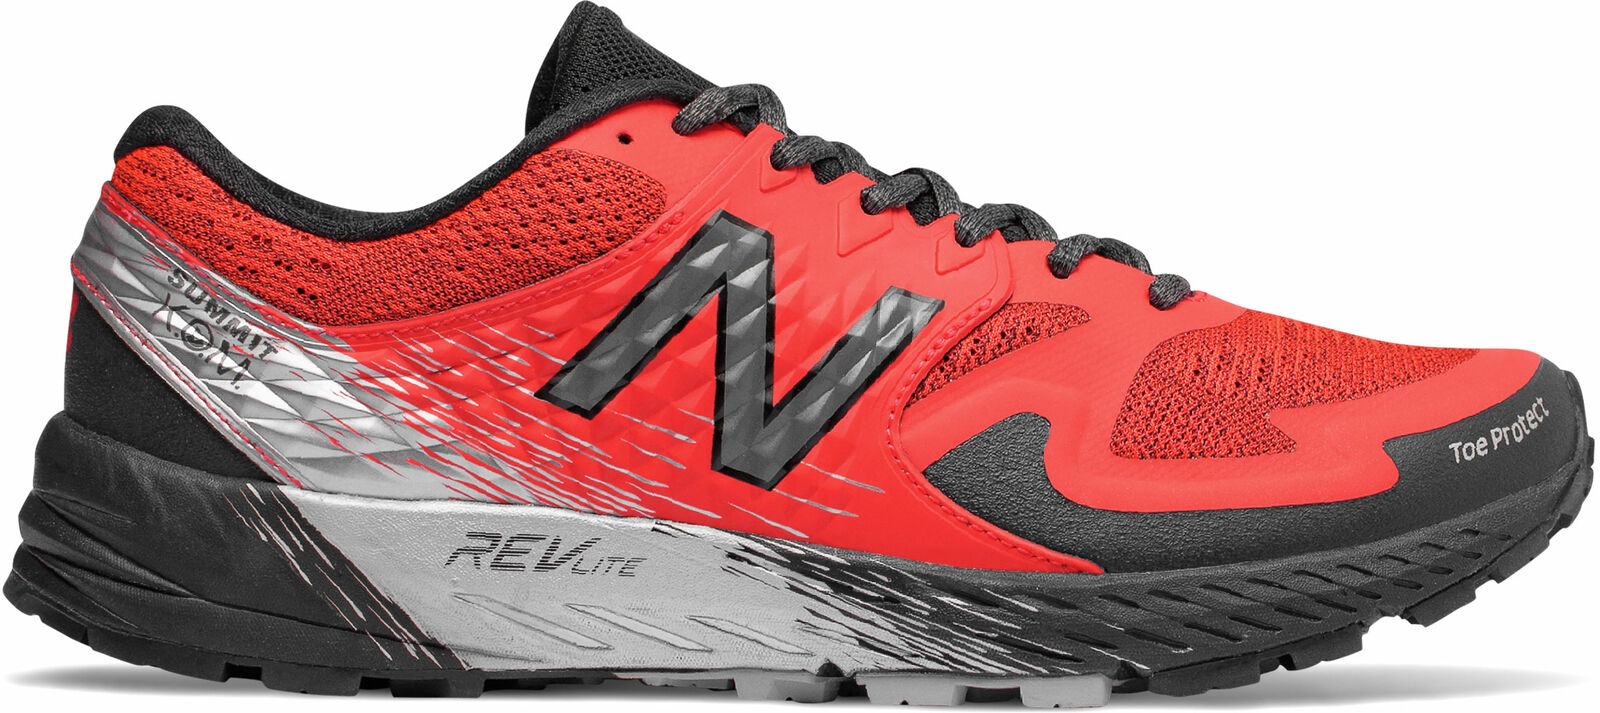 New Balance Men's Summit KOM MTSKOMFB Flame